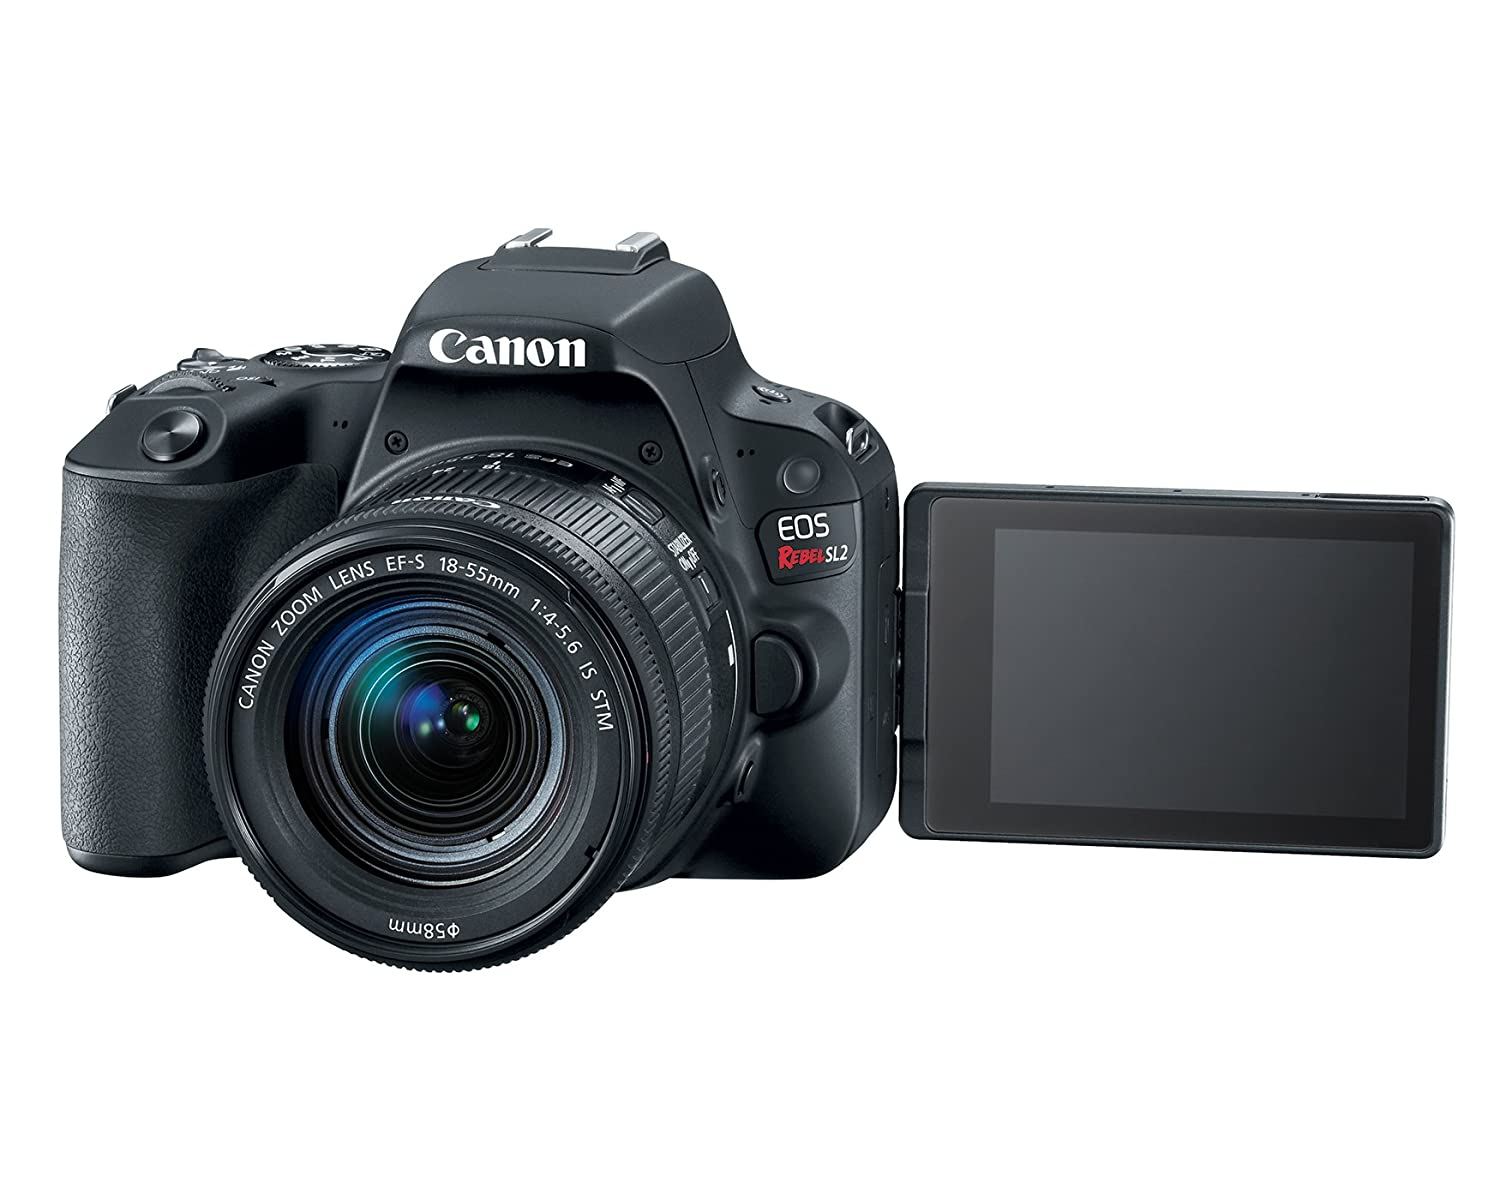 Amazon.com : Canon EOS Rebel SL2 DSLR Camera with EF-S 18-55mm STM ...